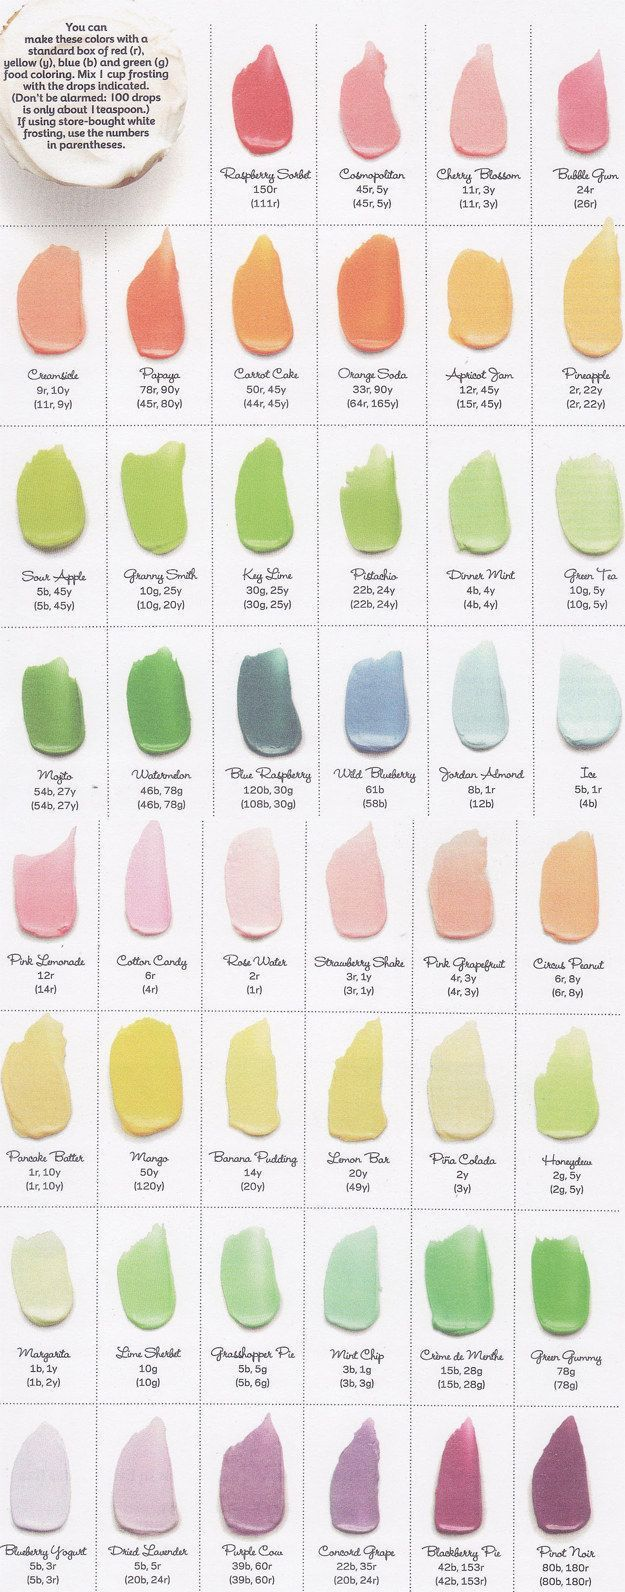 Food Coloring Guide & Flavor Guide + Frosting Recipes | Frosting ...